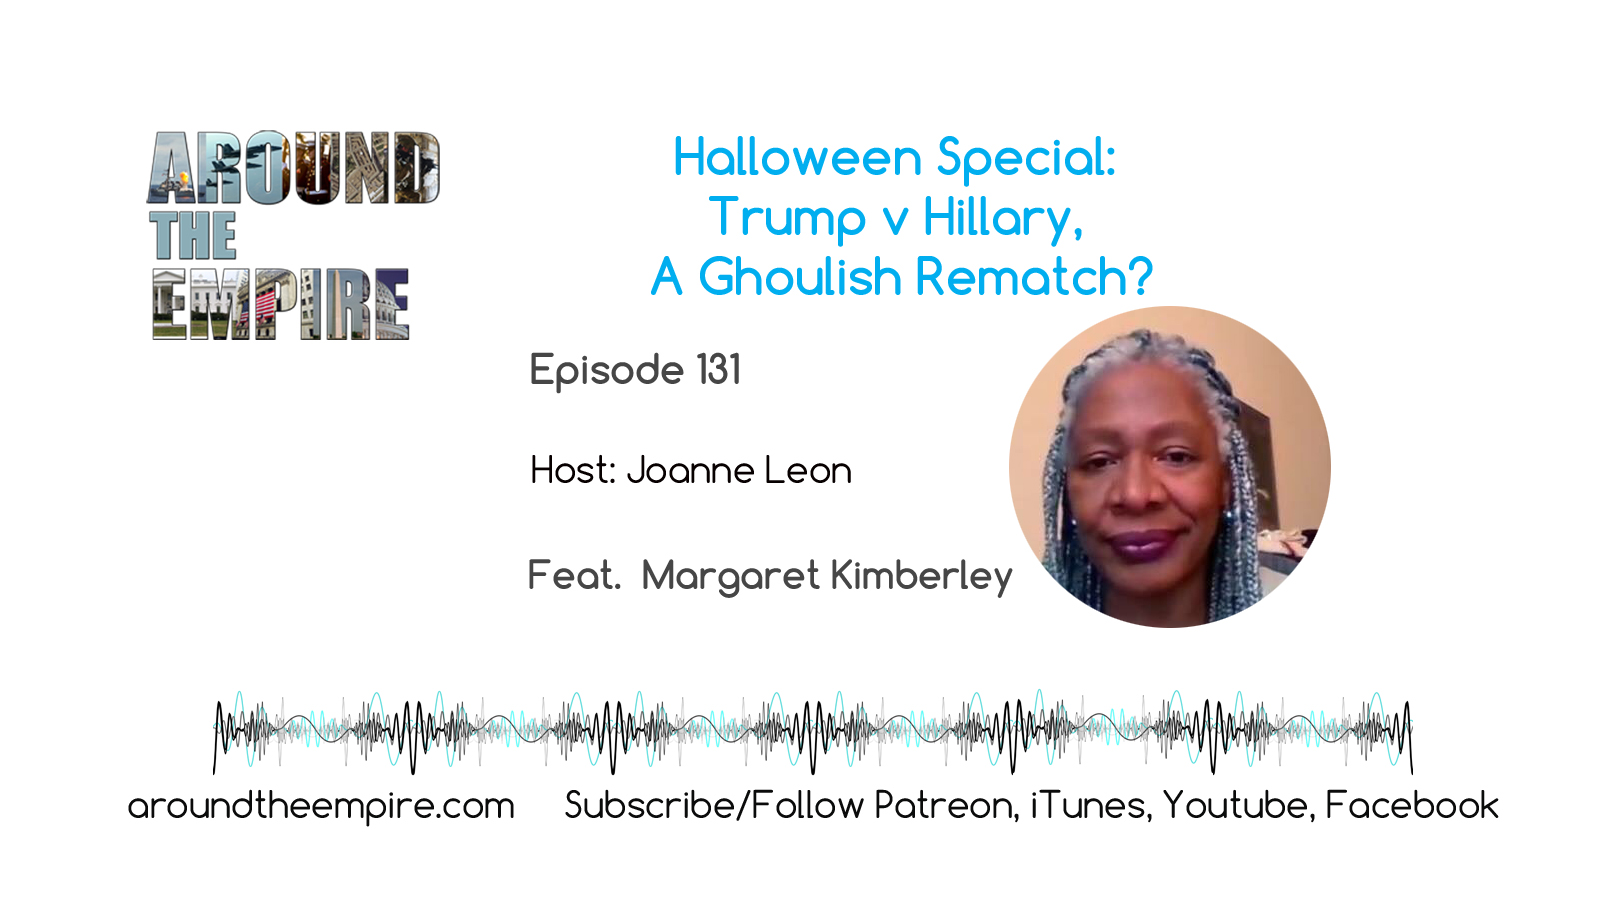 ep131 Halloween Special: Ghoulish Rematch? feat Margaret Kimberley